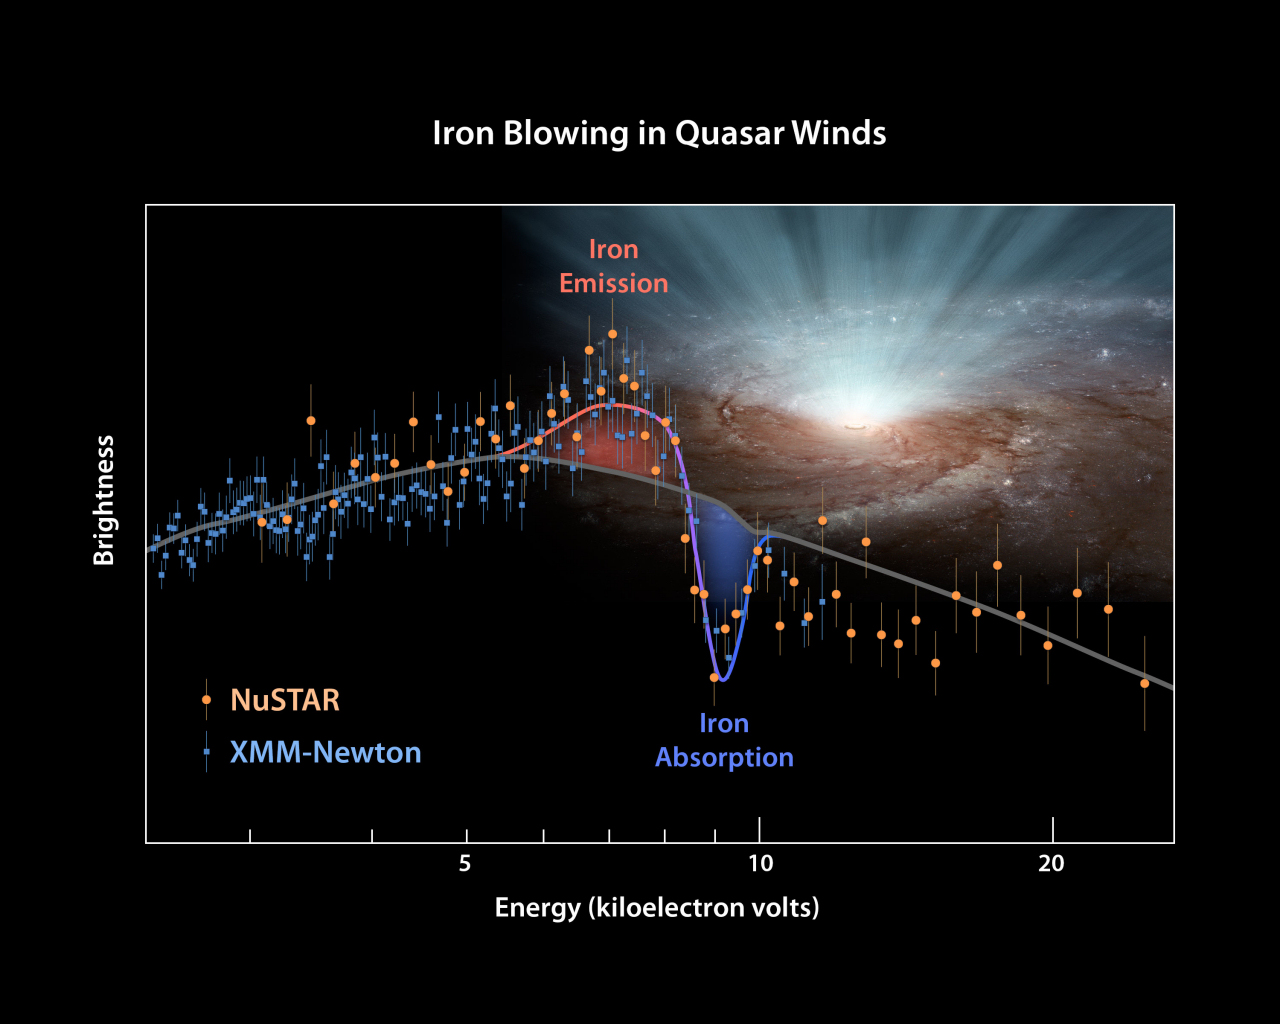 ESA Science & Technology: XMM-Newton and NuSTAR spectrum of the ...